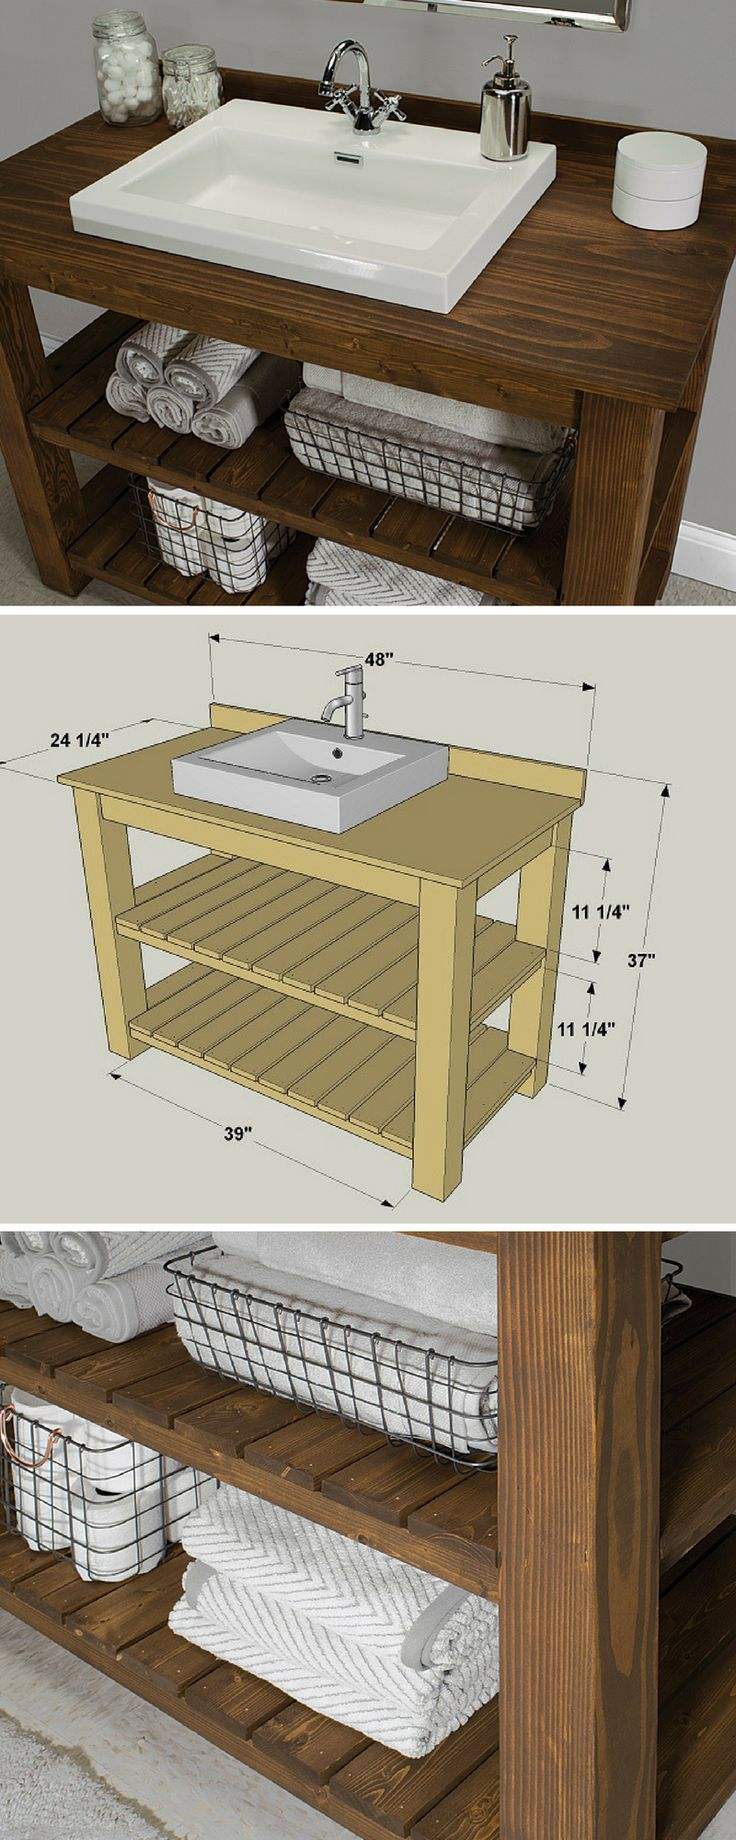 By combining simple lines and stained-pine construction with a modern-style sink, this vanity combines rustic and contemporary for a sophisticated look. That makes it perfect whether your style leans toward farmhouse or contemporary. Plus it offers large shelves for storage, and it's easy to build.